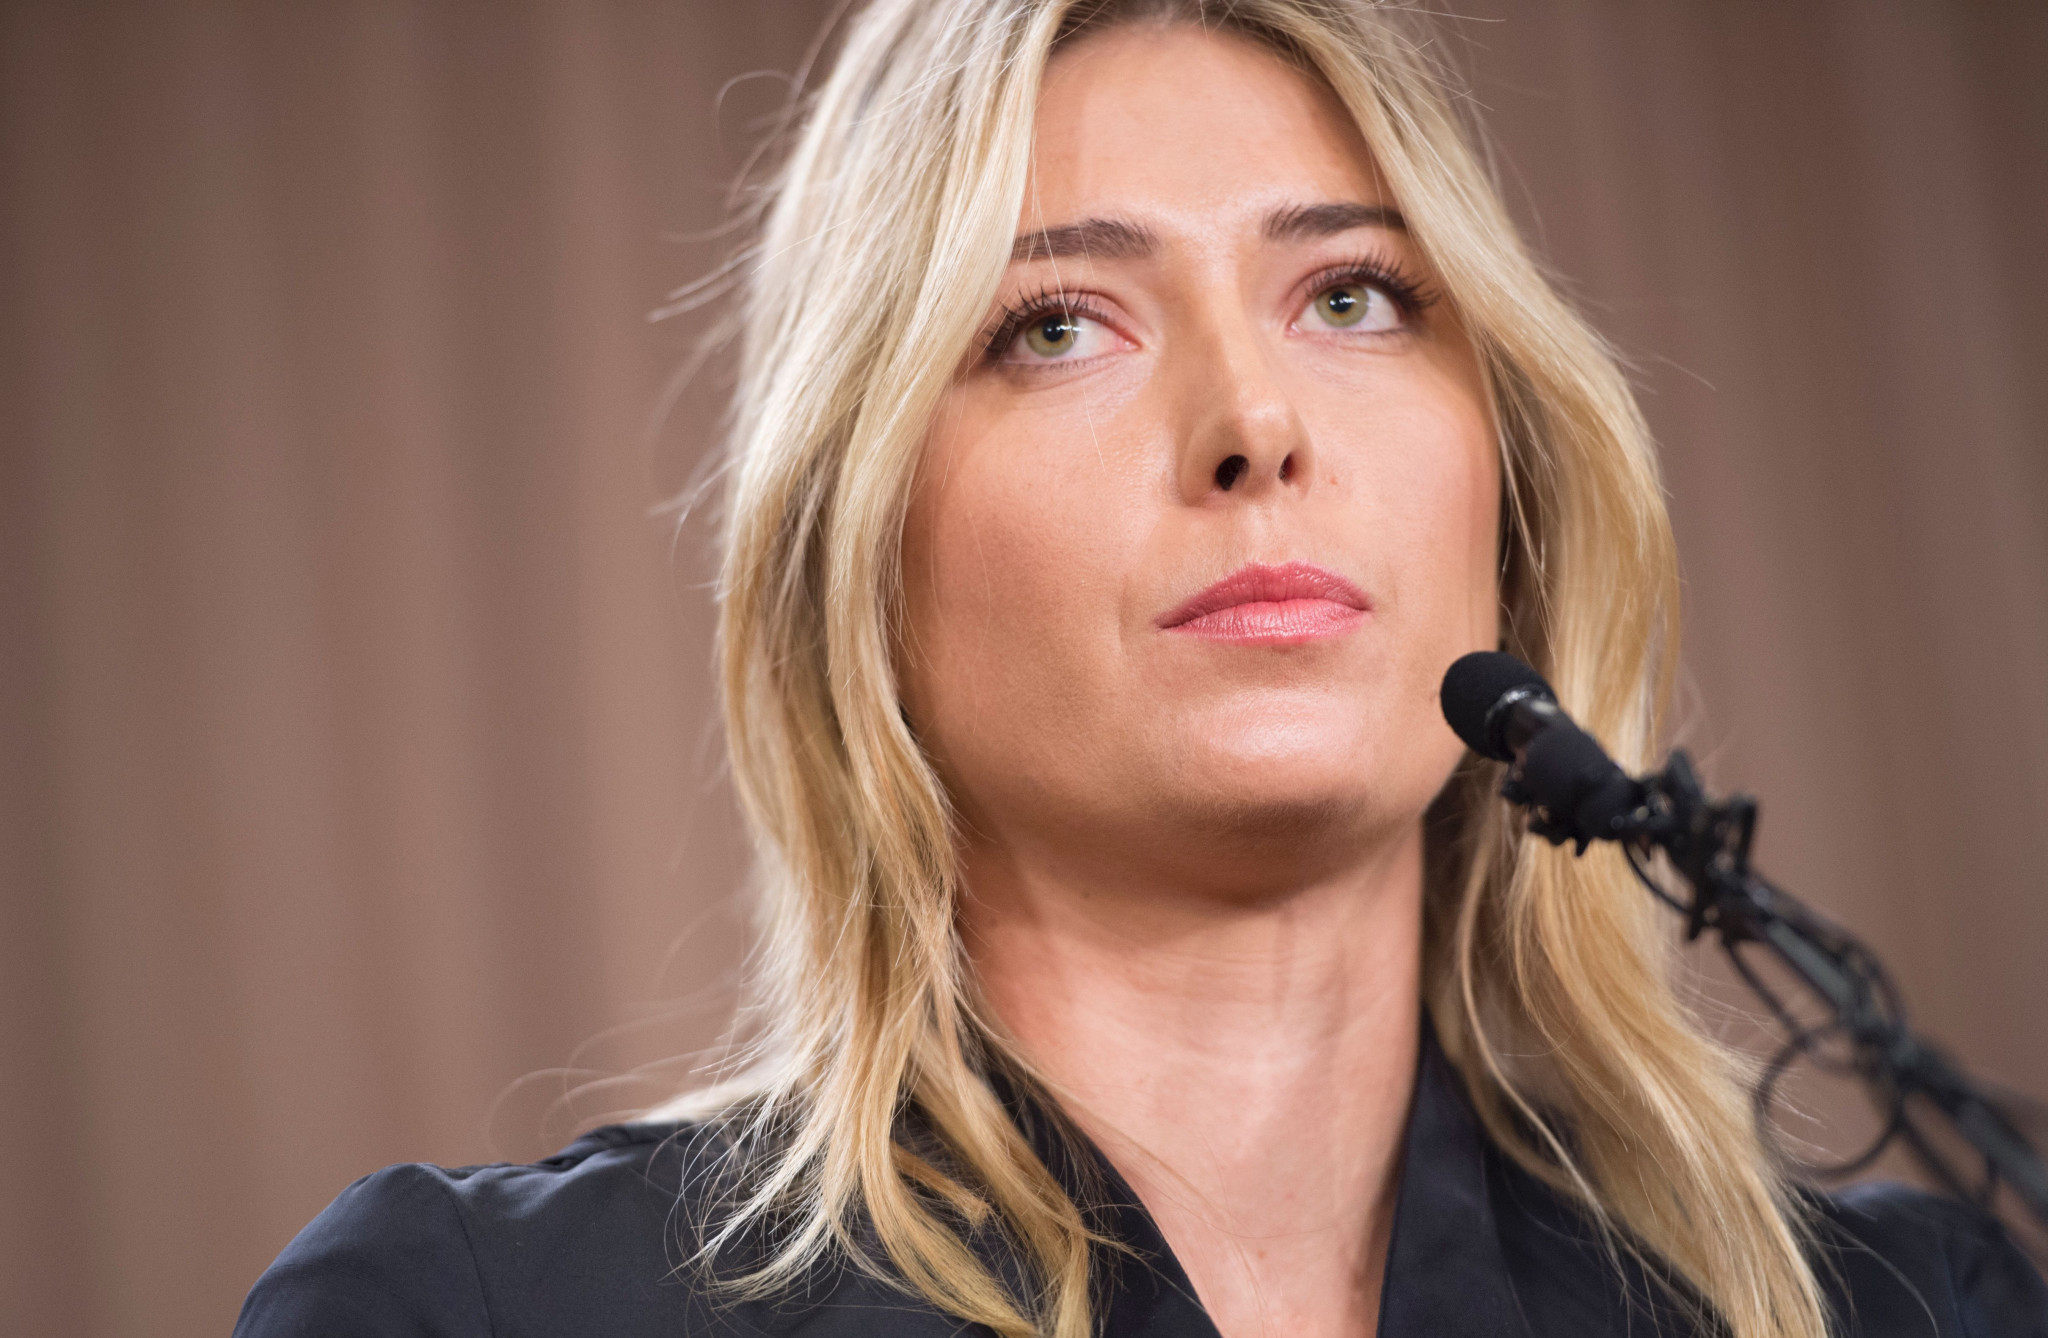 Maria Sharapova announced in March 2016 she had tested positive for meldonium at that year's Australian Open ©Getty Images